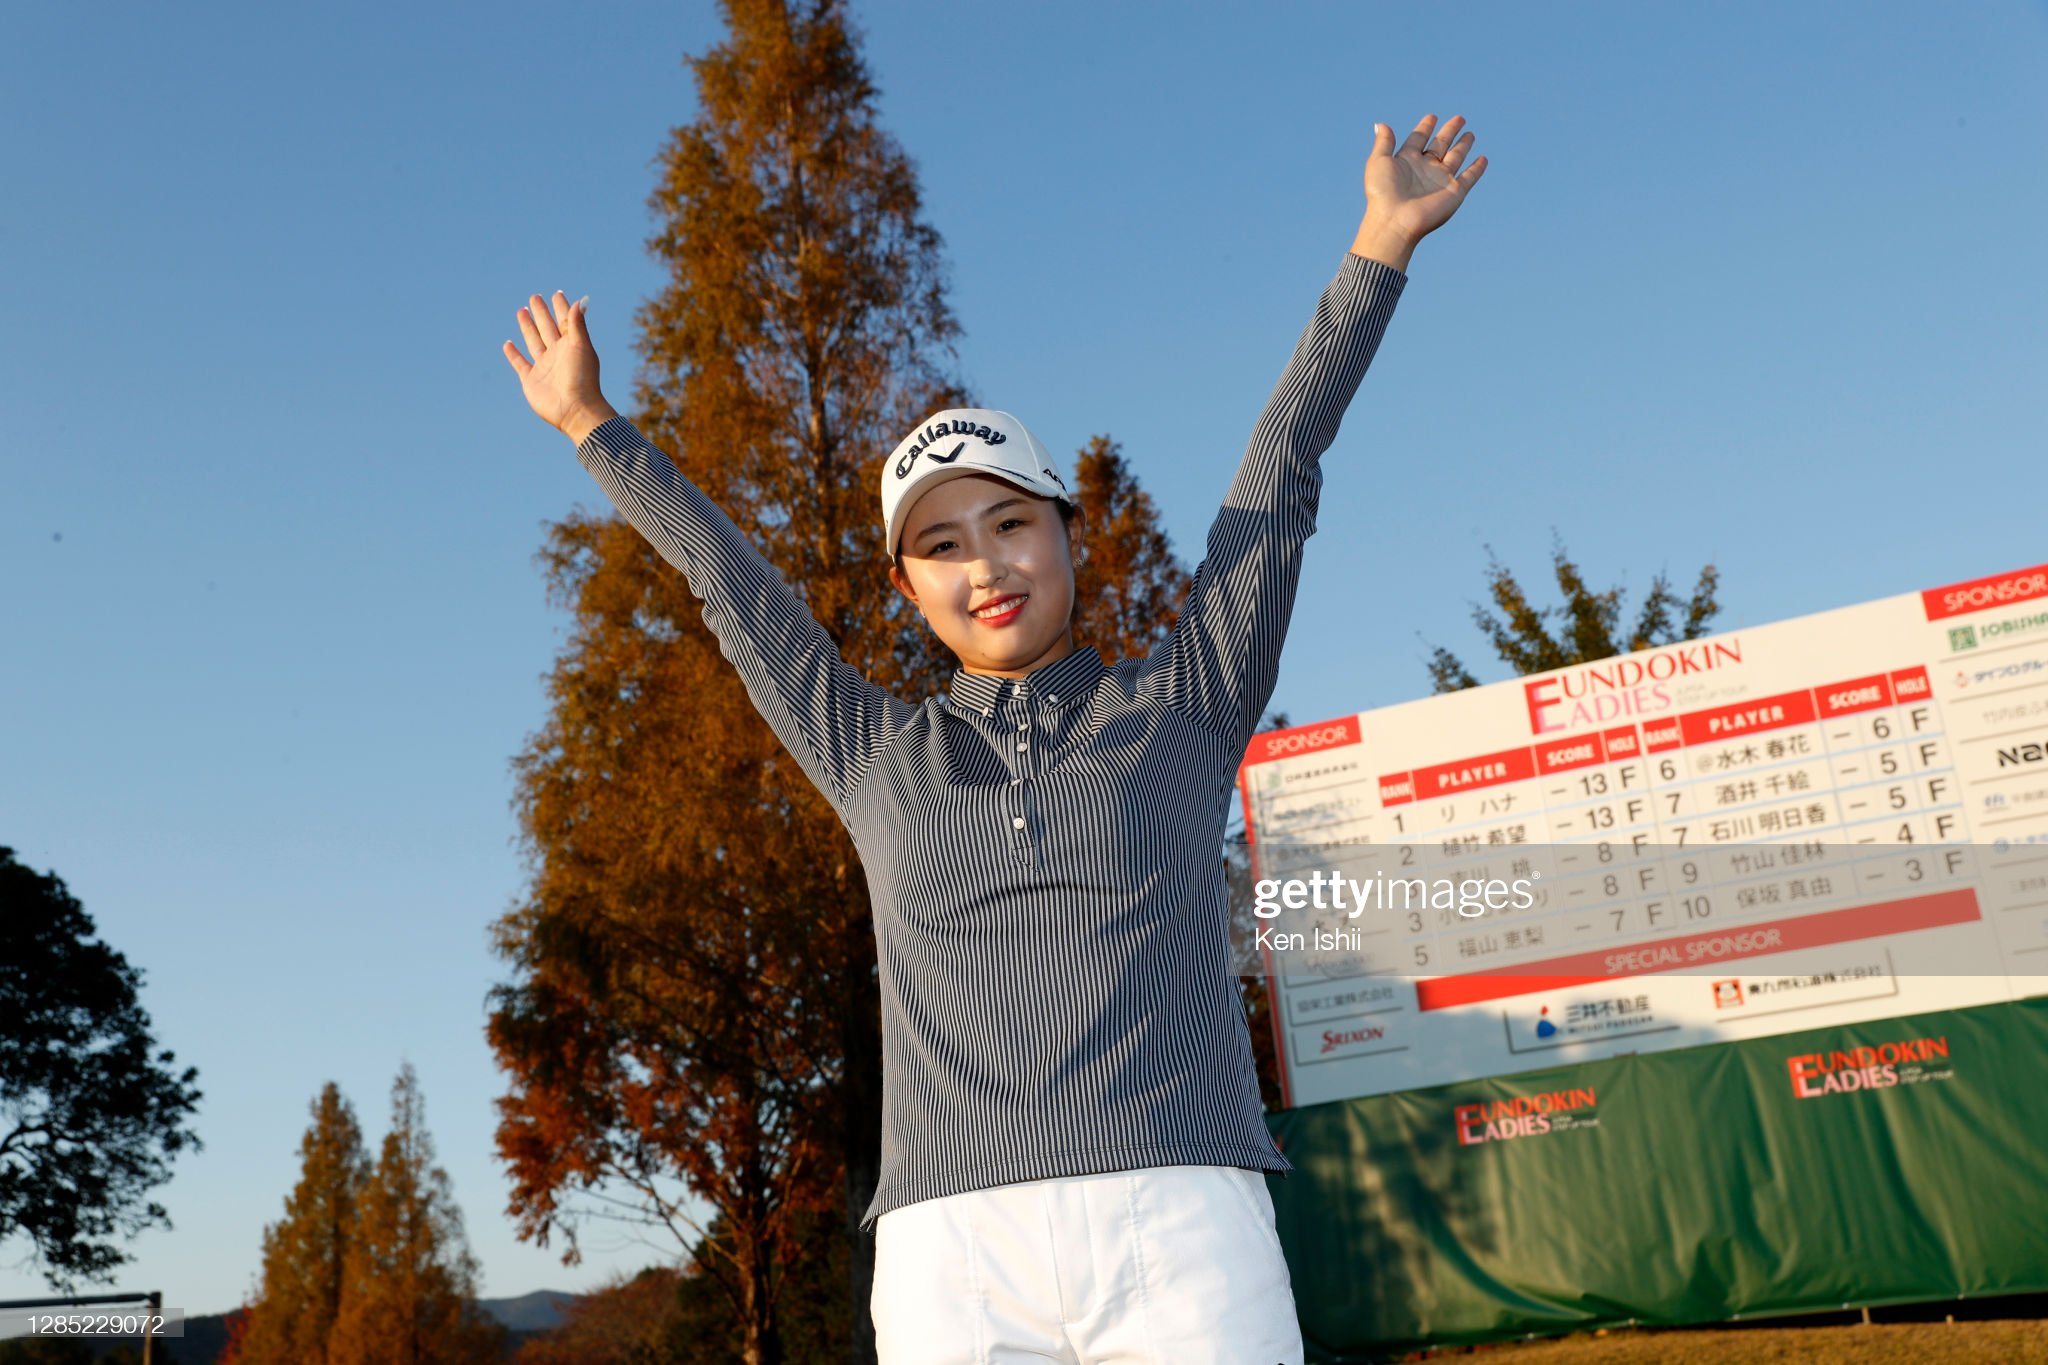 https://media.gettyimages.com/photos/hana-lee-of-south-korea-celebrates-winning-the-tournament-after-the-picture-id1285229072?s=2048x2048